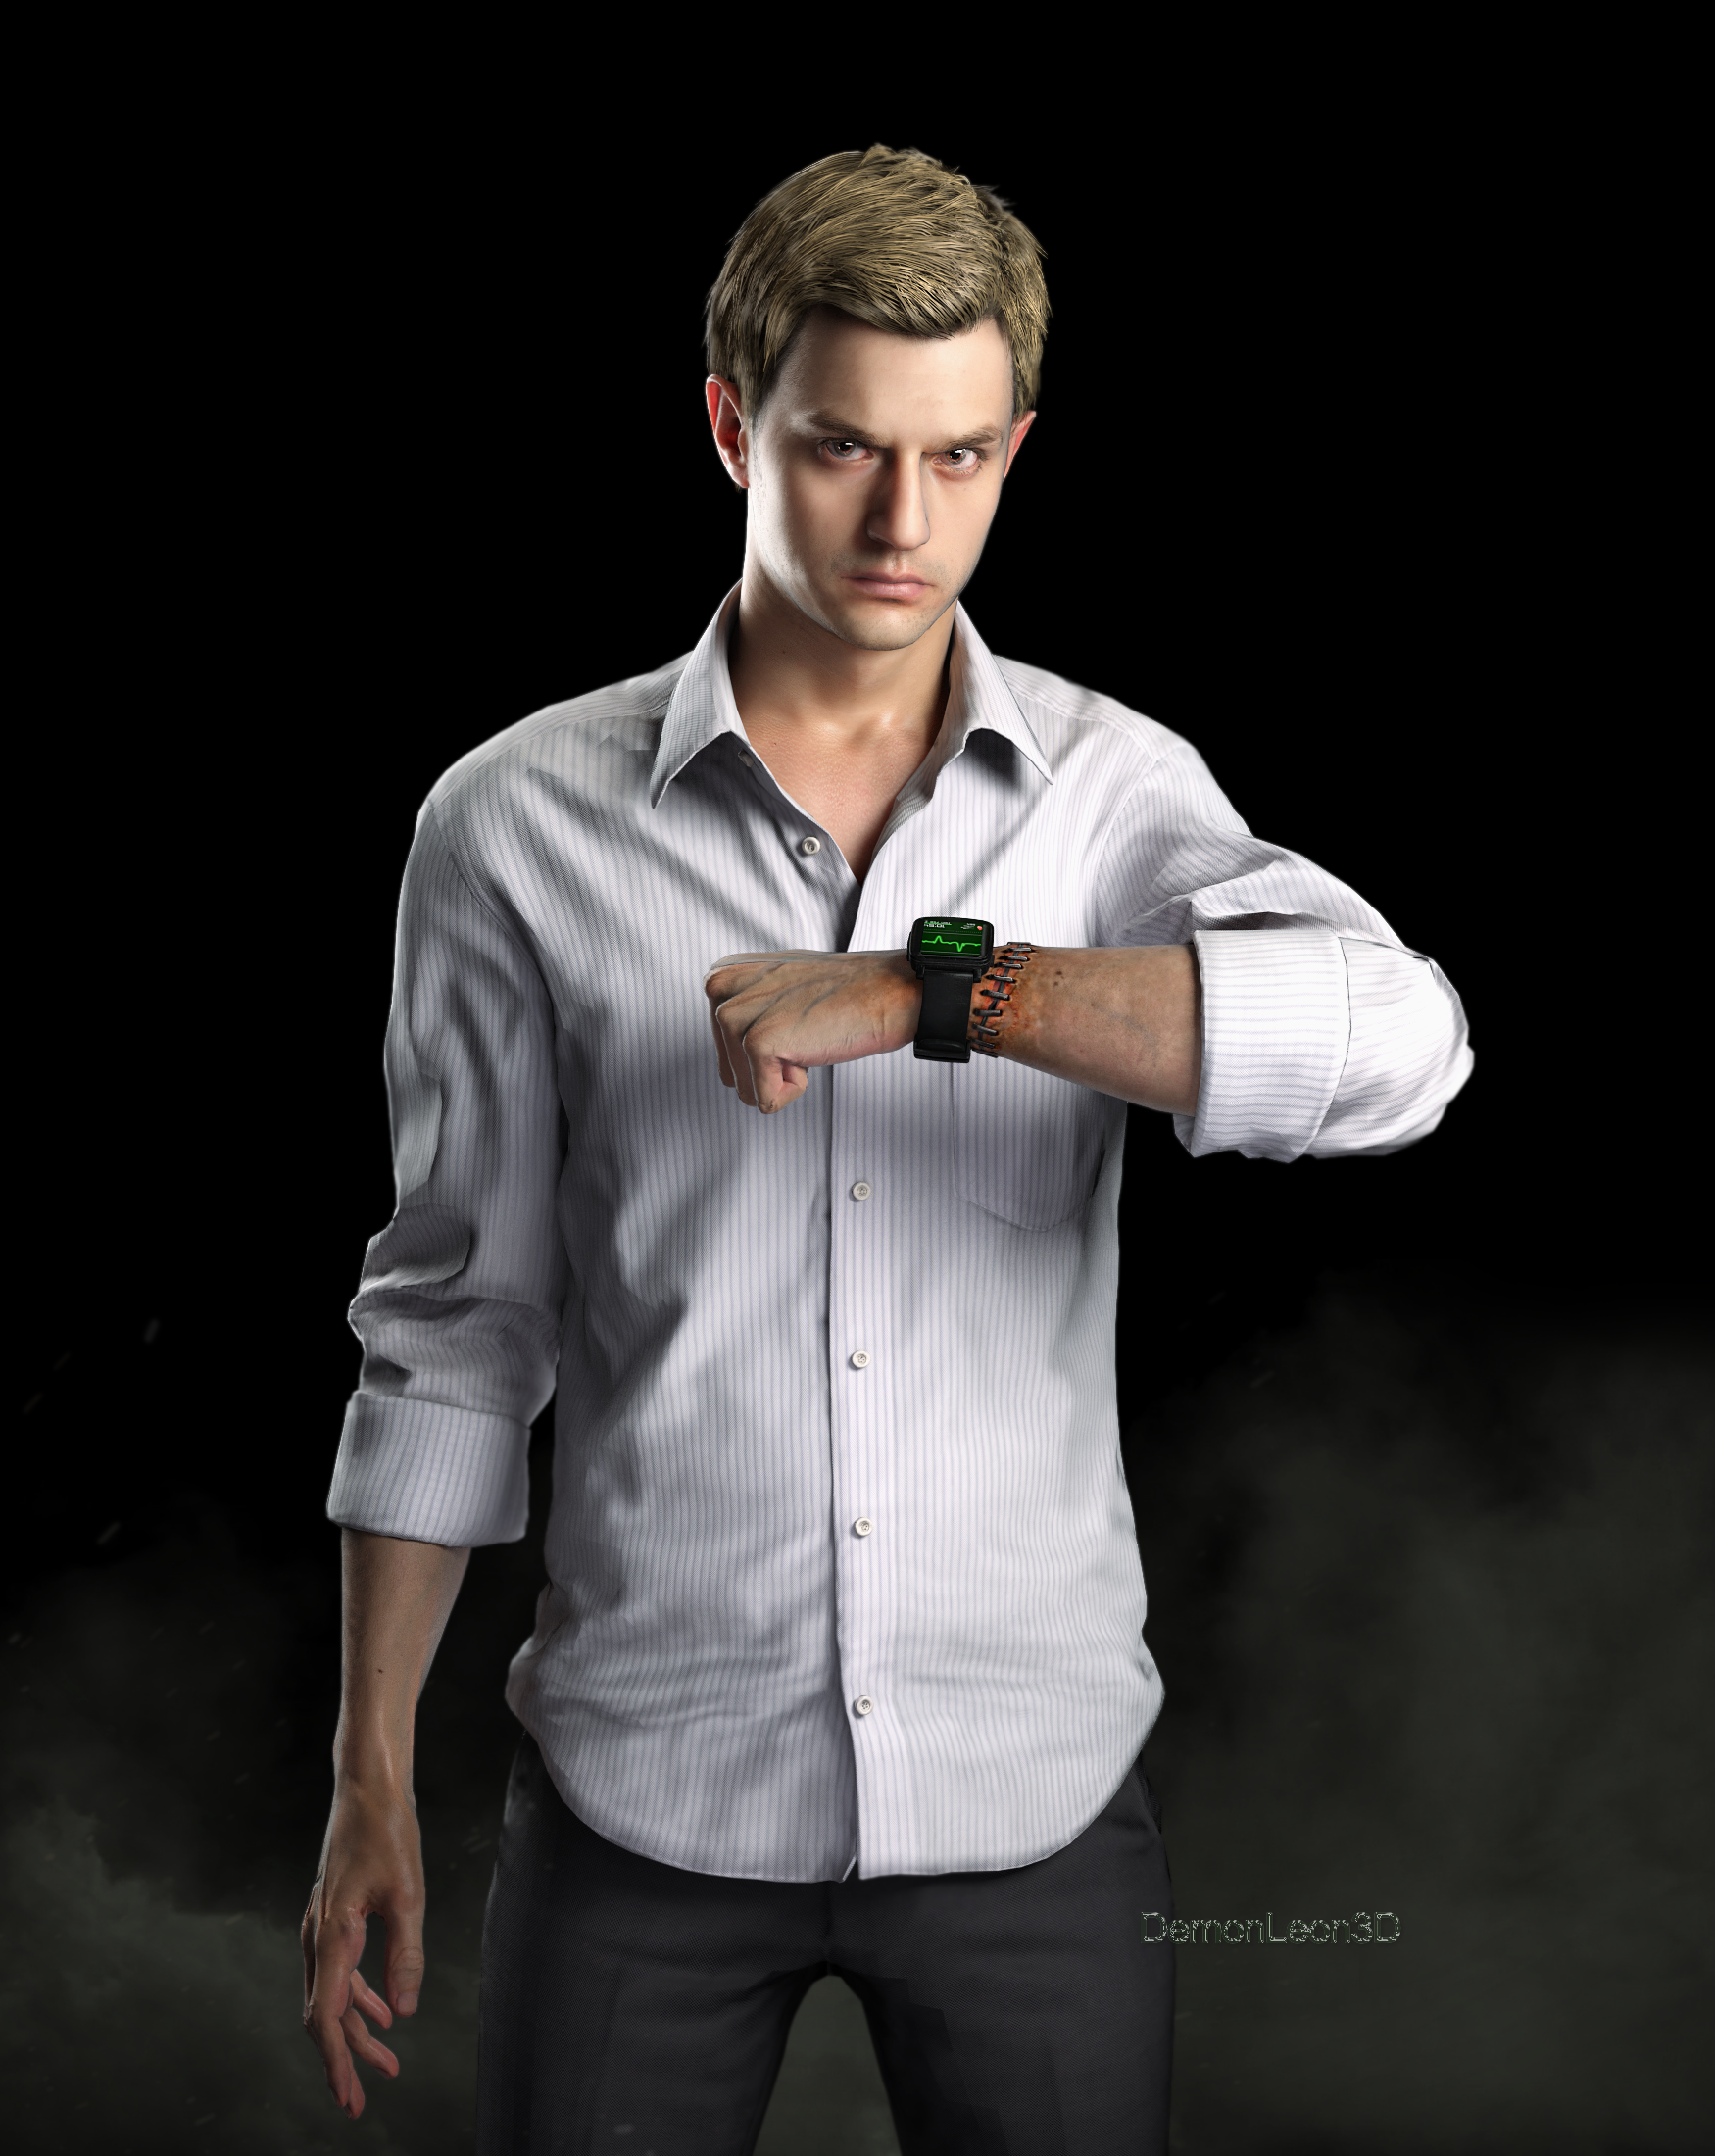 Ethan Winters by DemonLeon3D